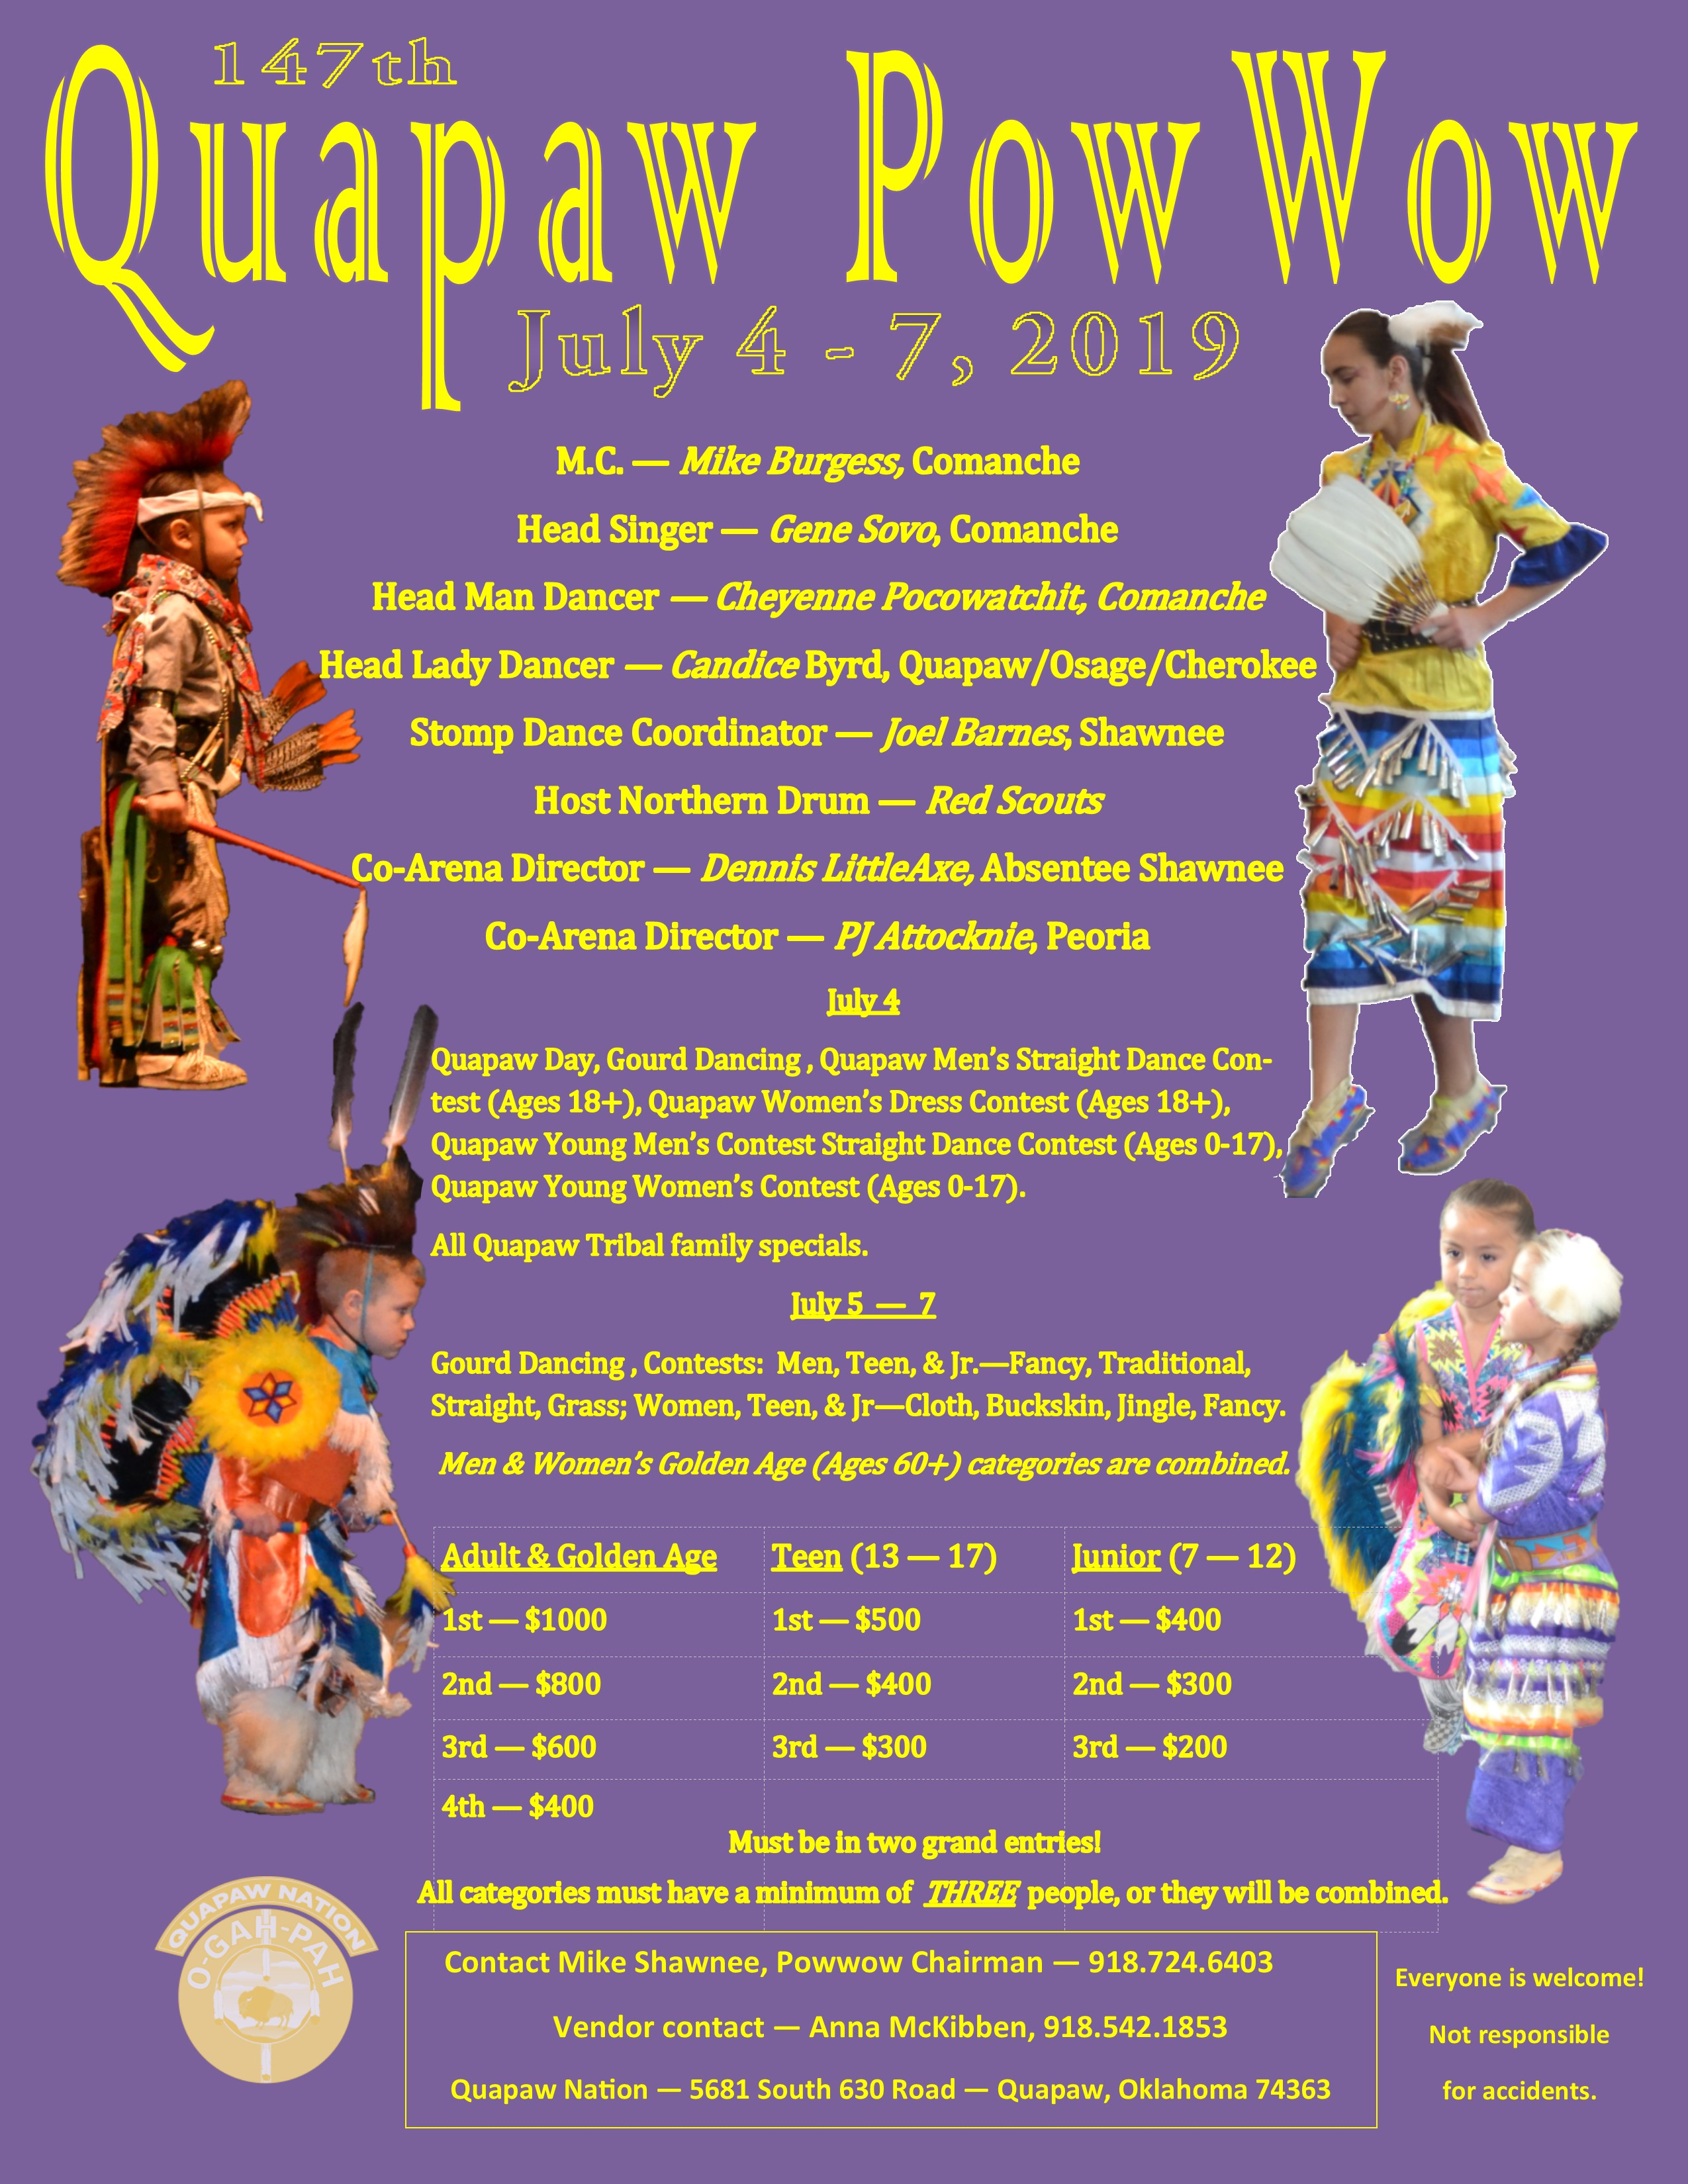 147th Quapaw Powow